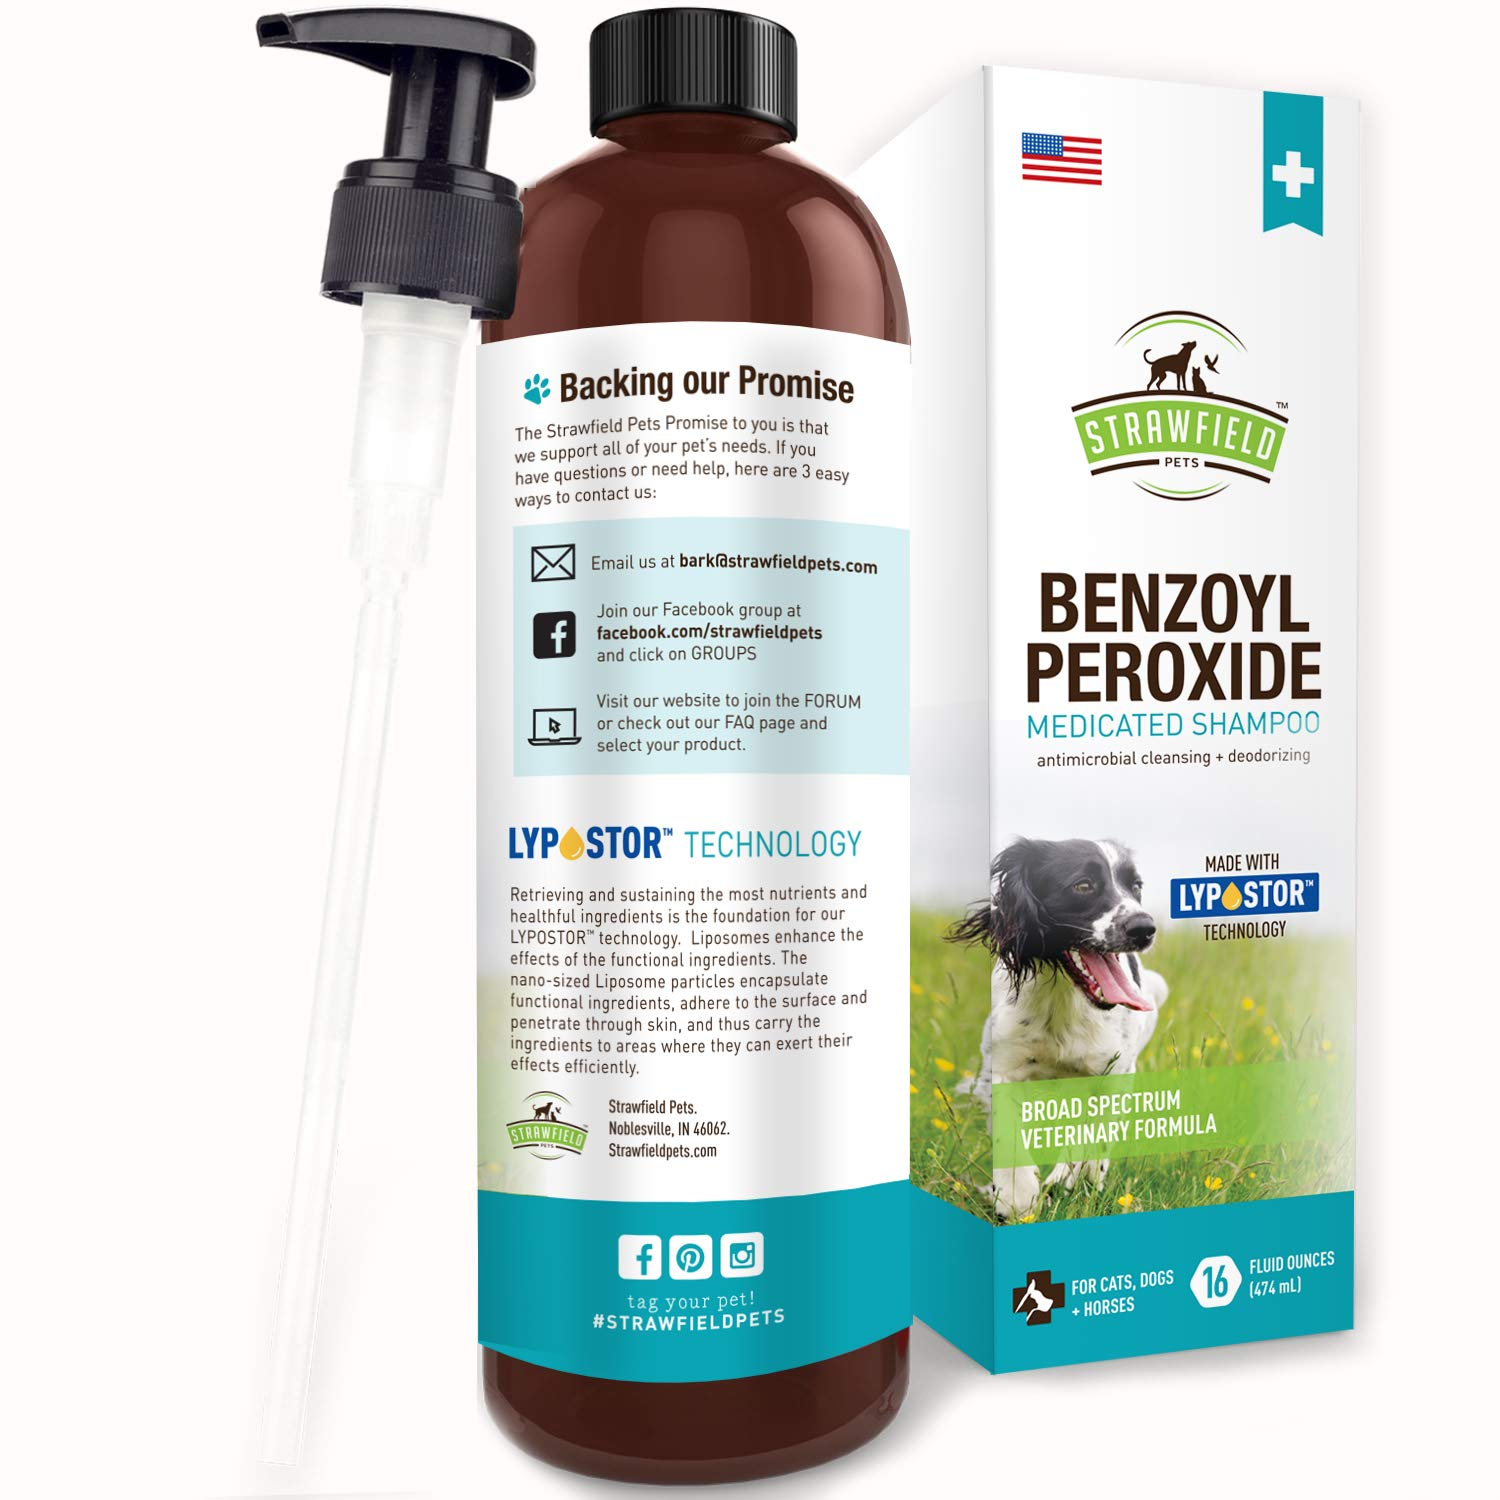 Benzoyl Peroxide Shampoo for Dogs Cats + Sulfur - 16 oz - Medicated Dog  Shampoo for Smelly Dogs, Anti Itch Dry Skin Allergy Treatment,  Folliculitis,